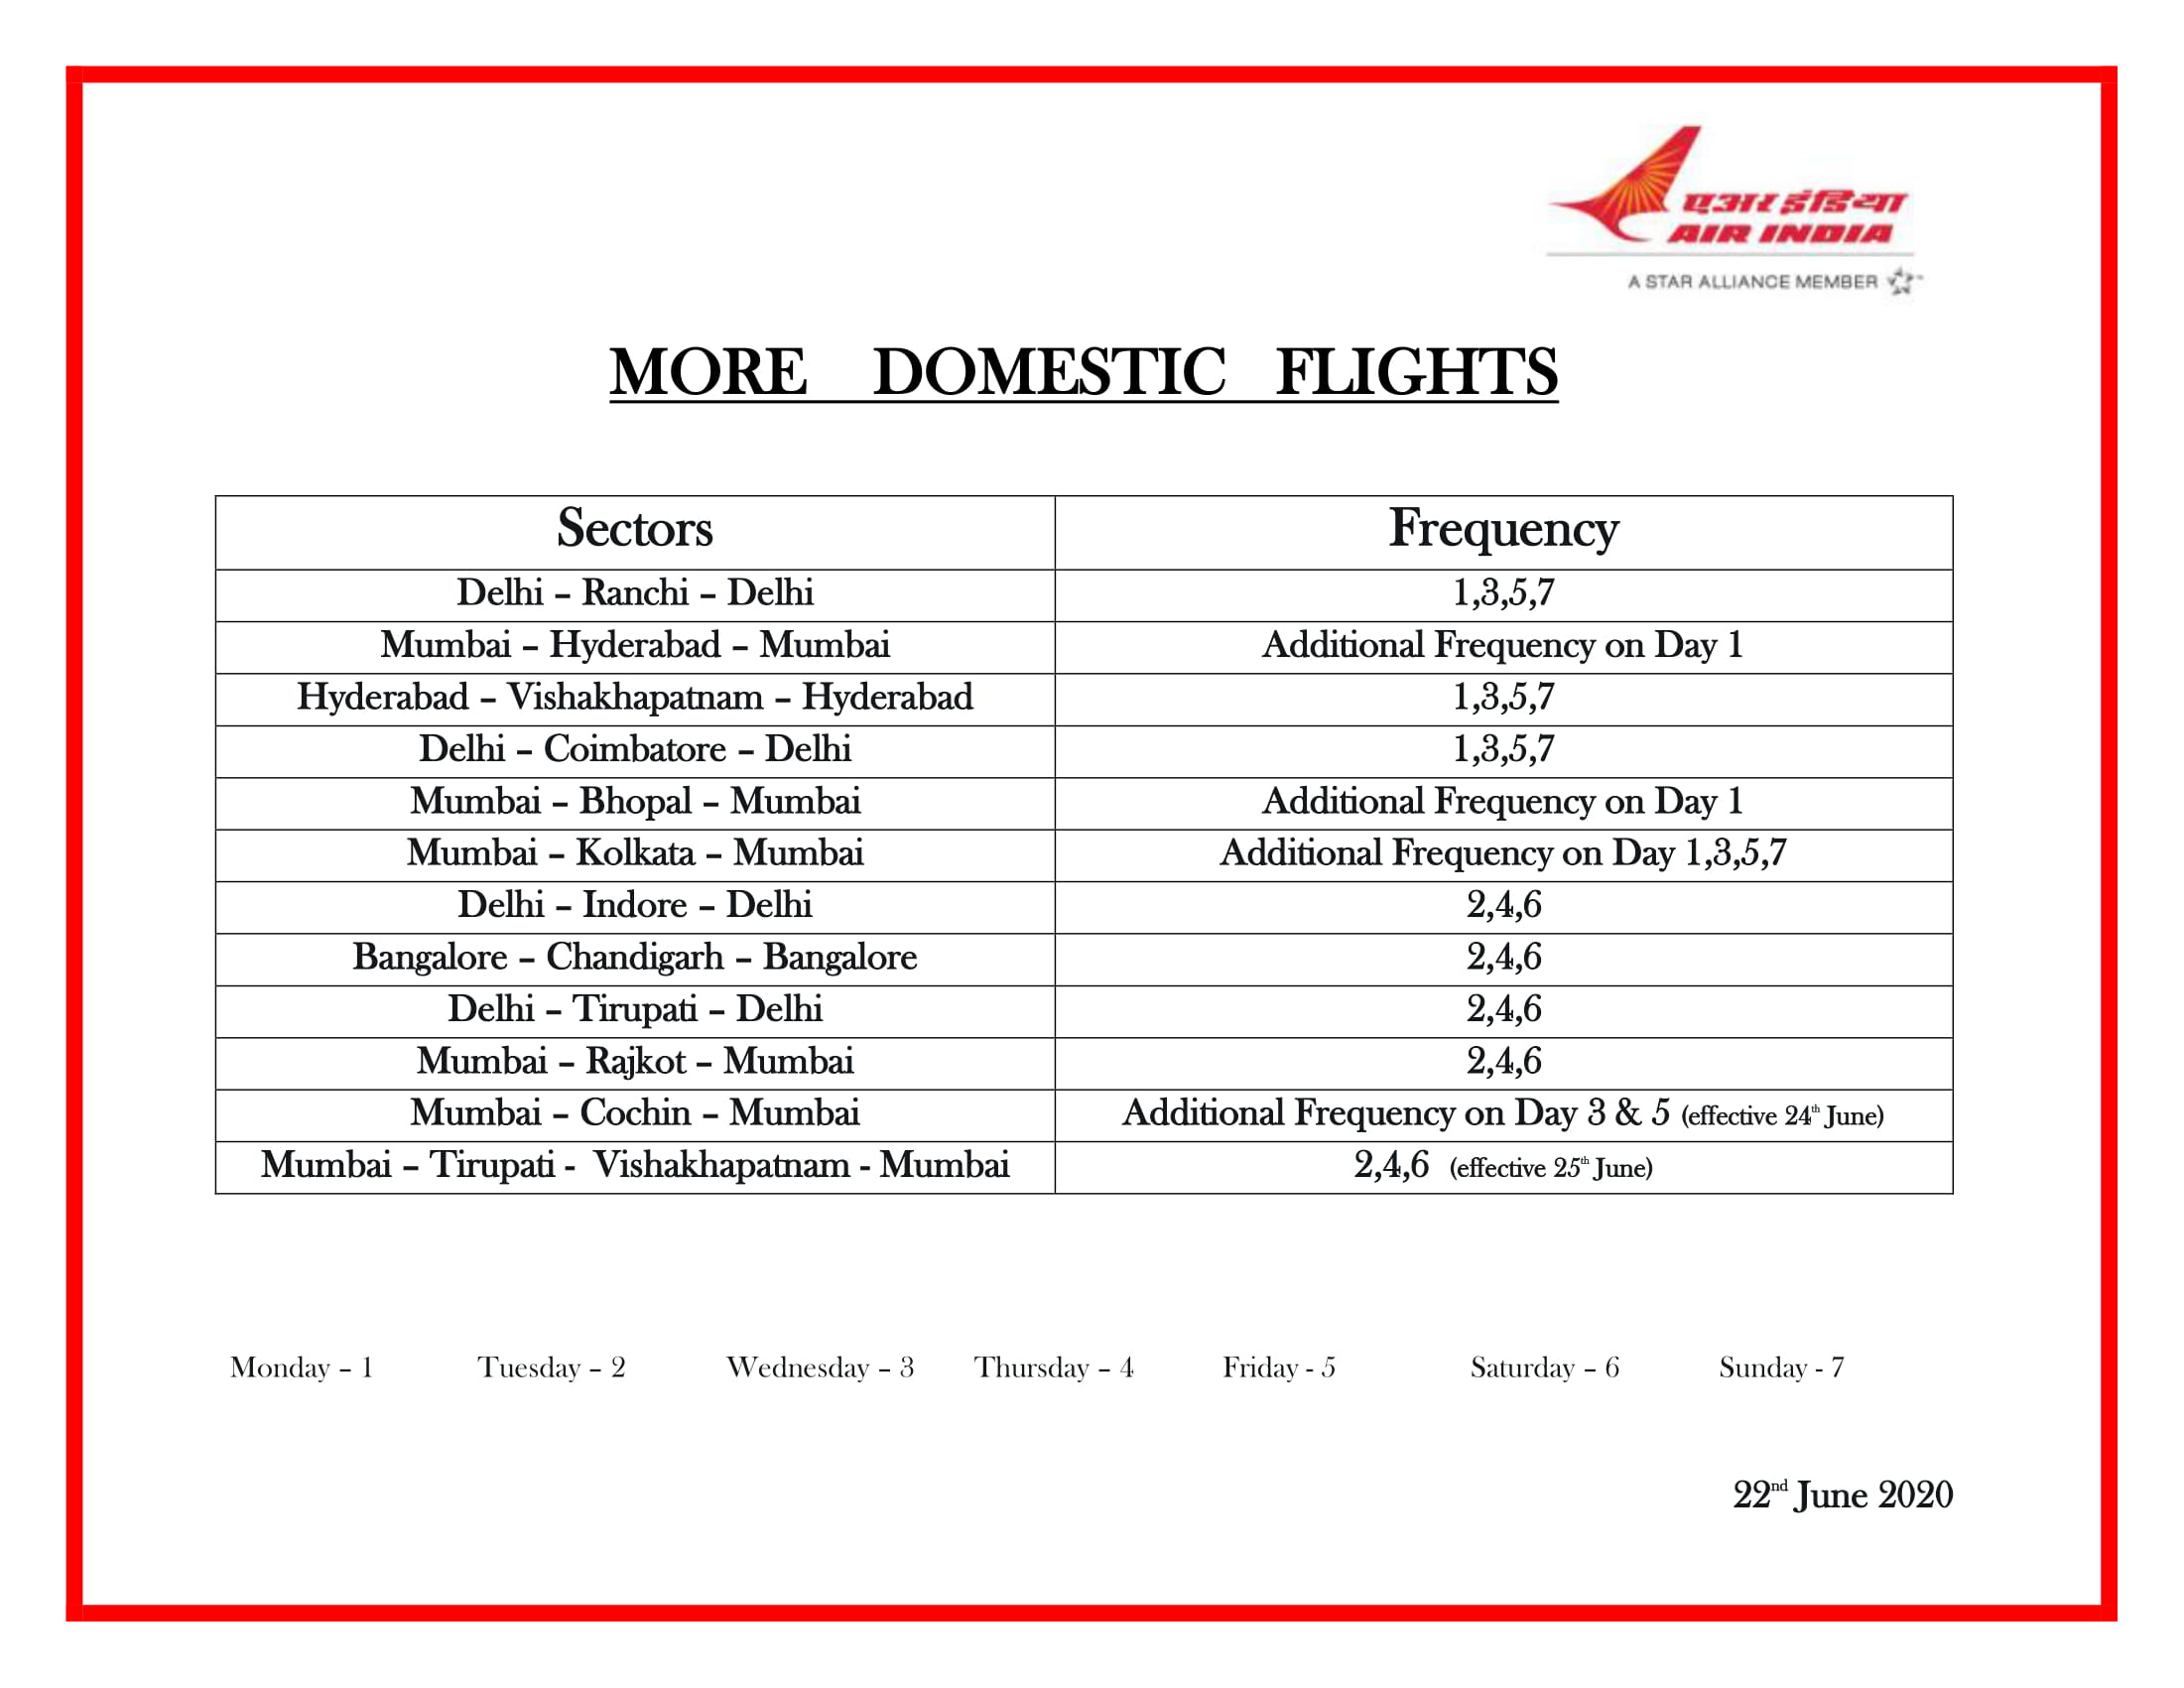 air india mor flights